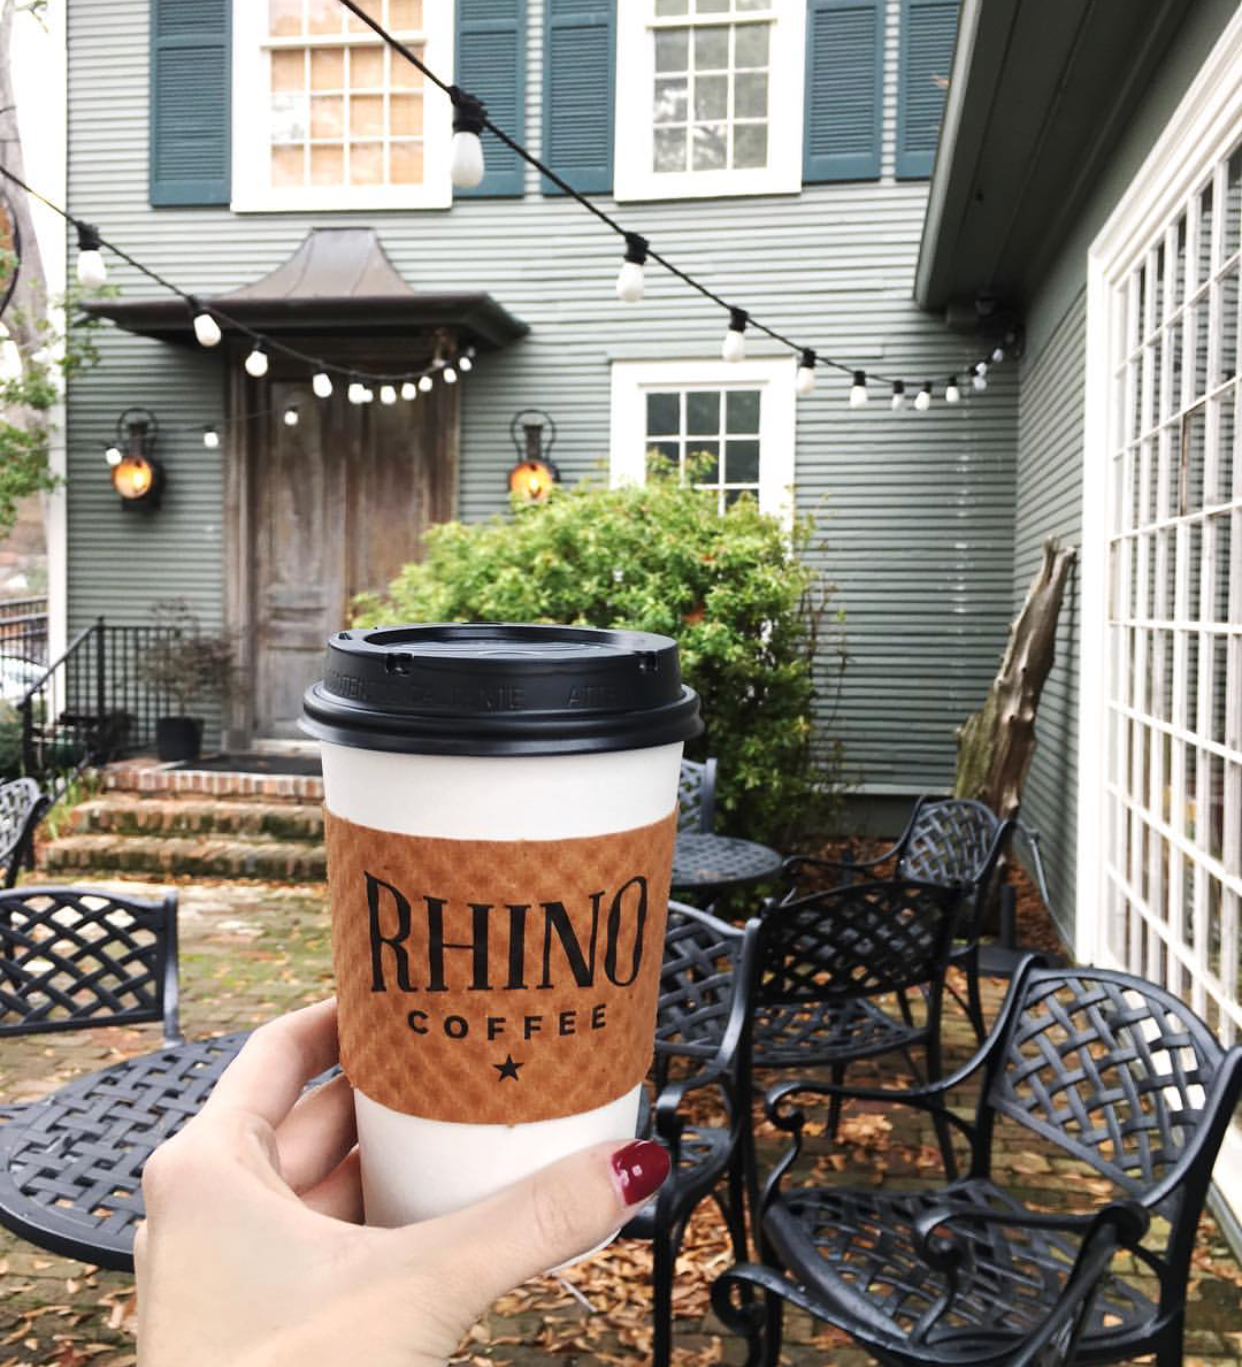 Rhino Coffee Shreveport - Week In Review - Shreveport Edition by Washington DC blogger Cobalt Chronicles